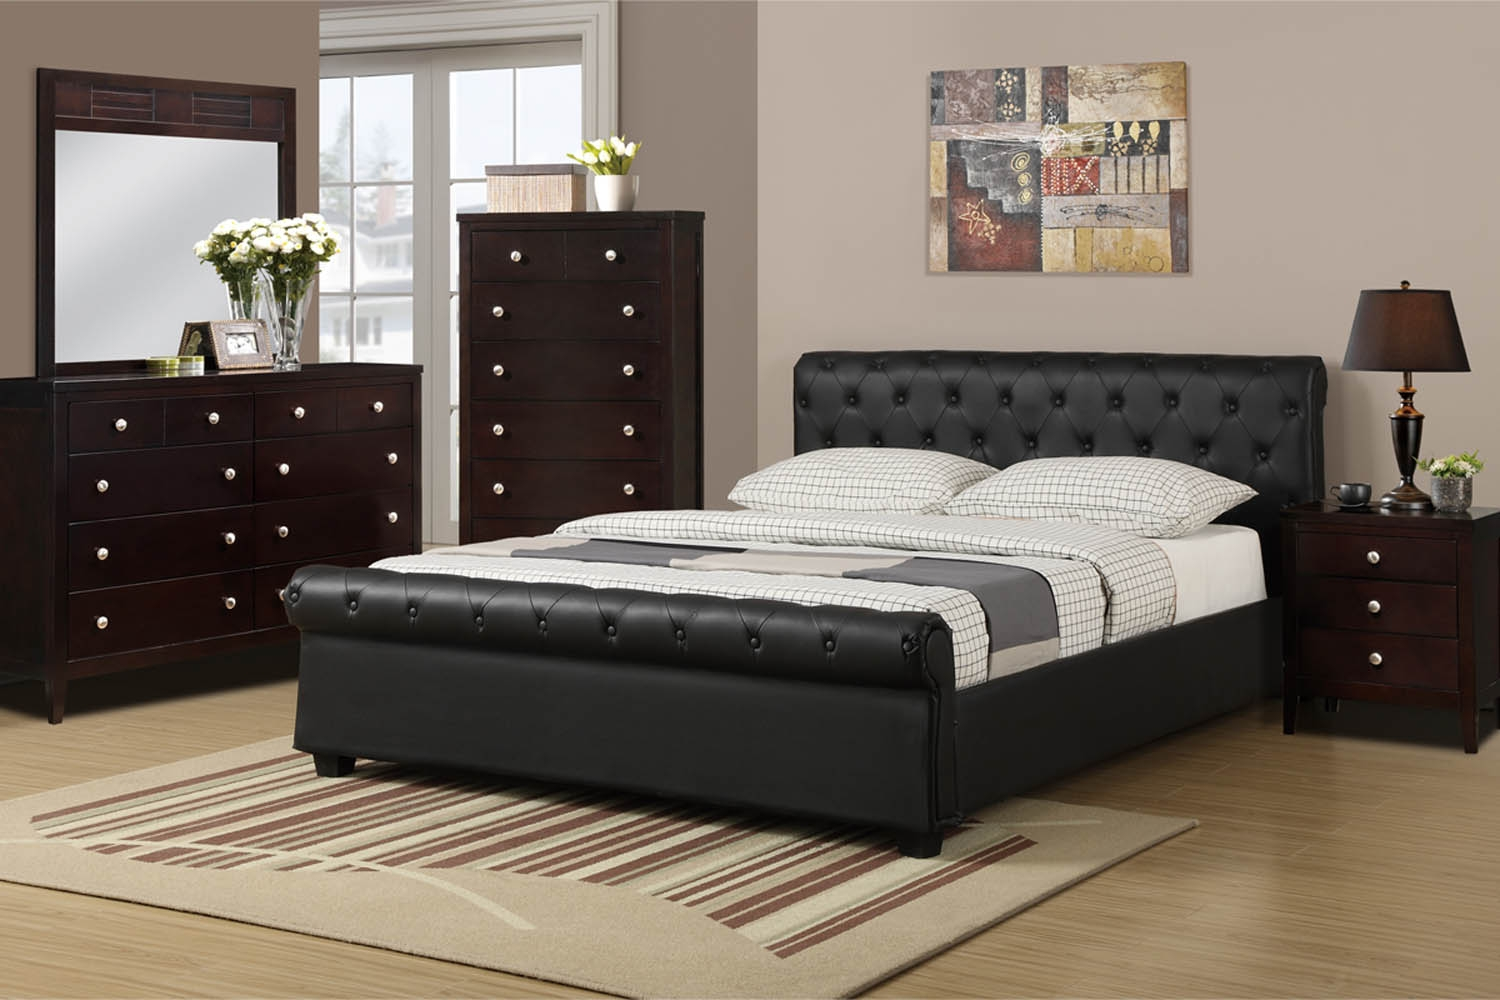 Queen Black Faux Leather Bed Frame With Black Leather Framed Mirror (Image 11 of 15)